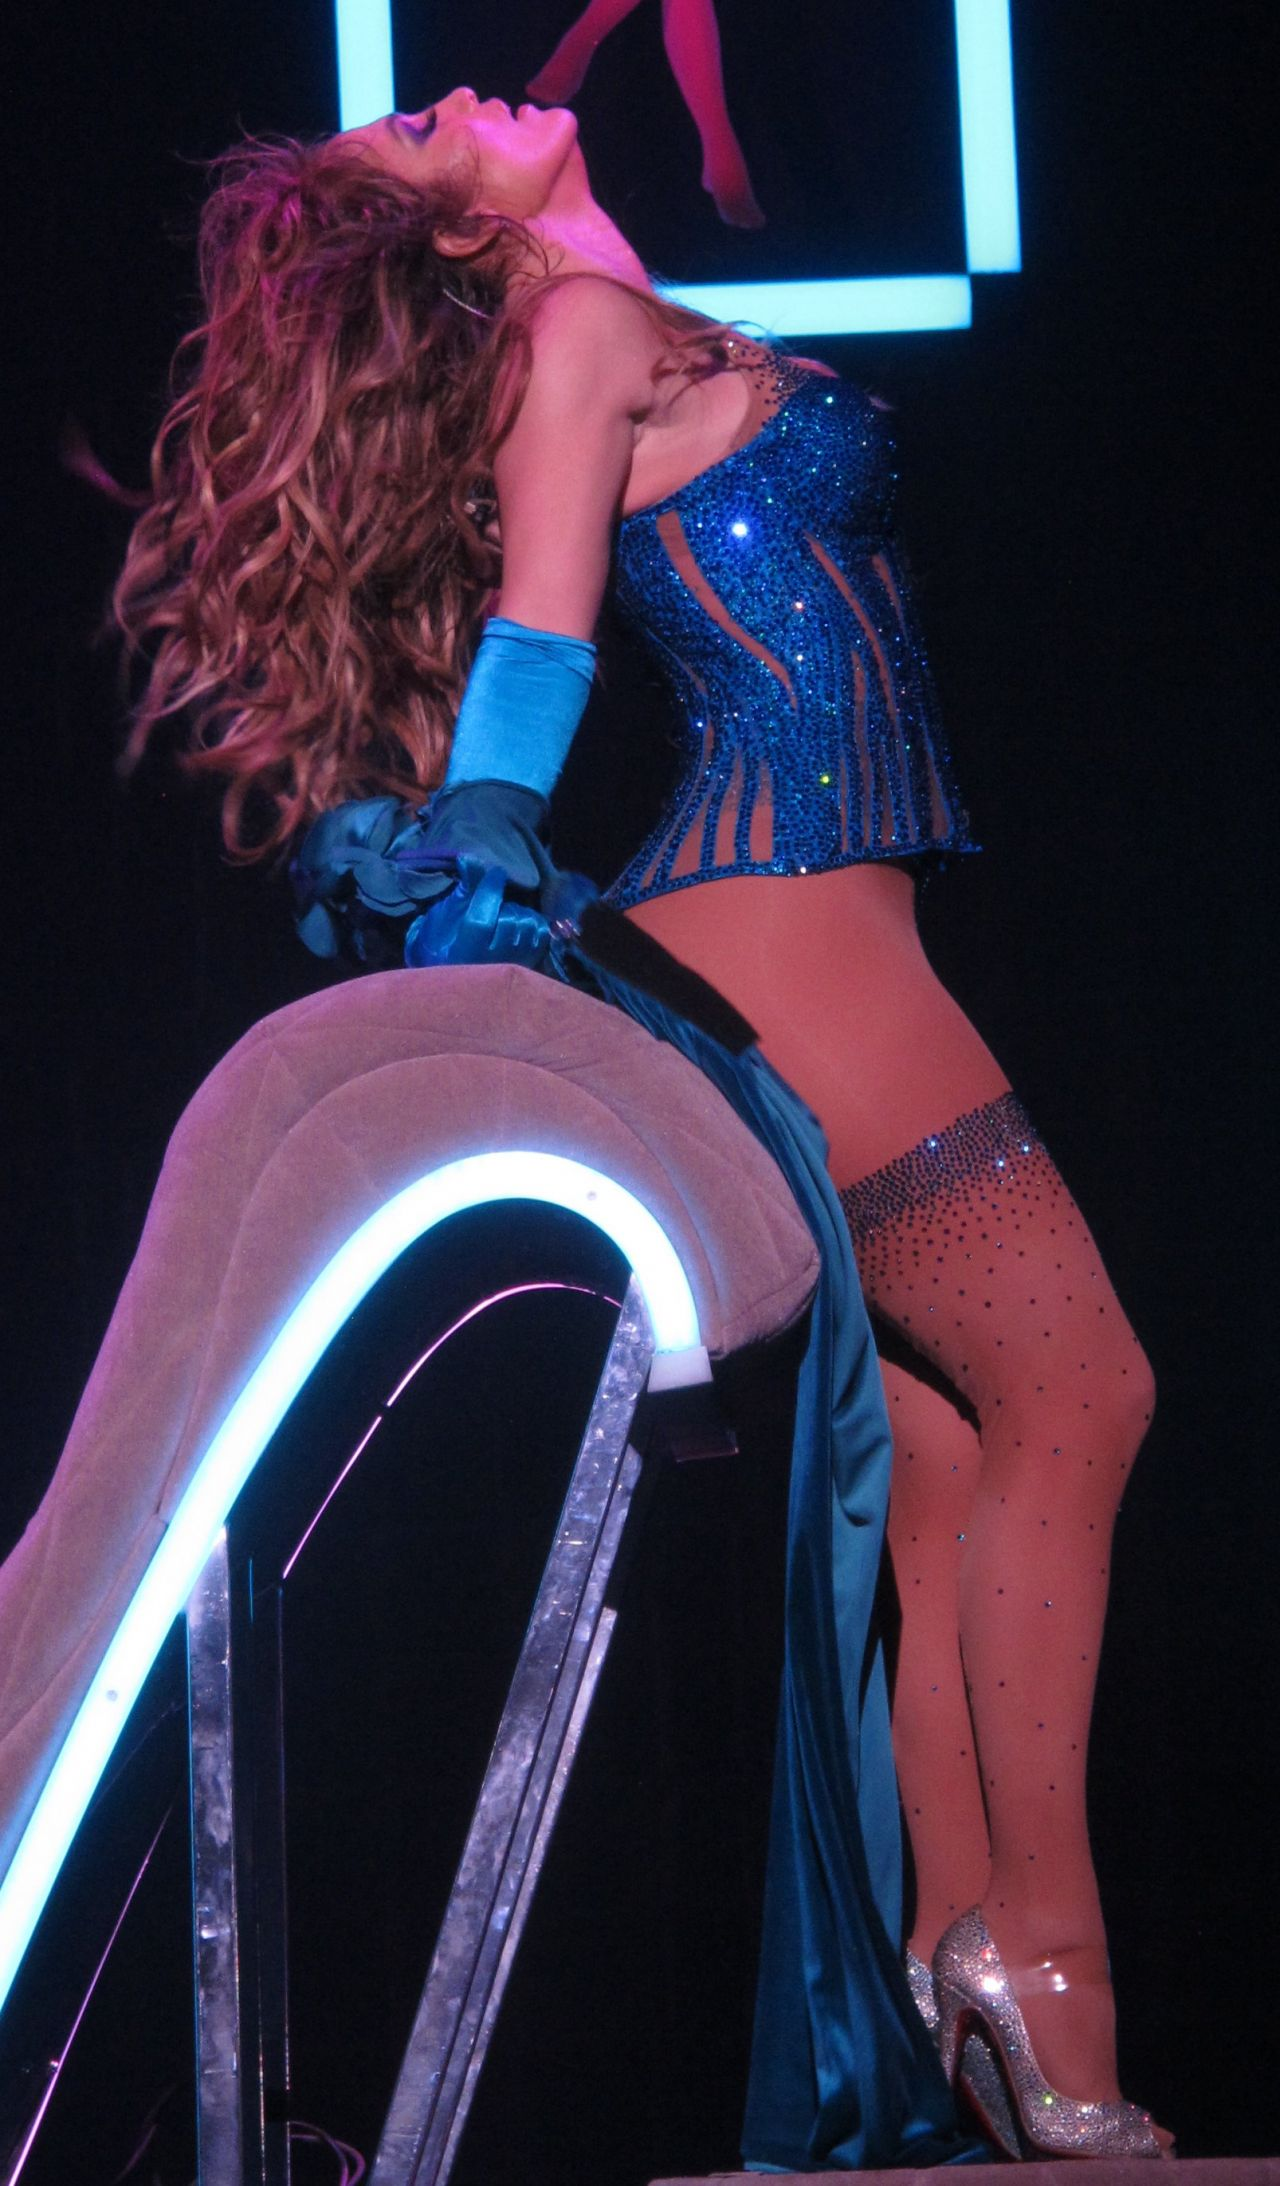 Jennifer Lopez Performs At Opening Night Of Her All I